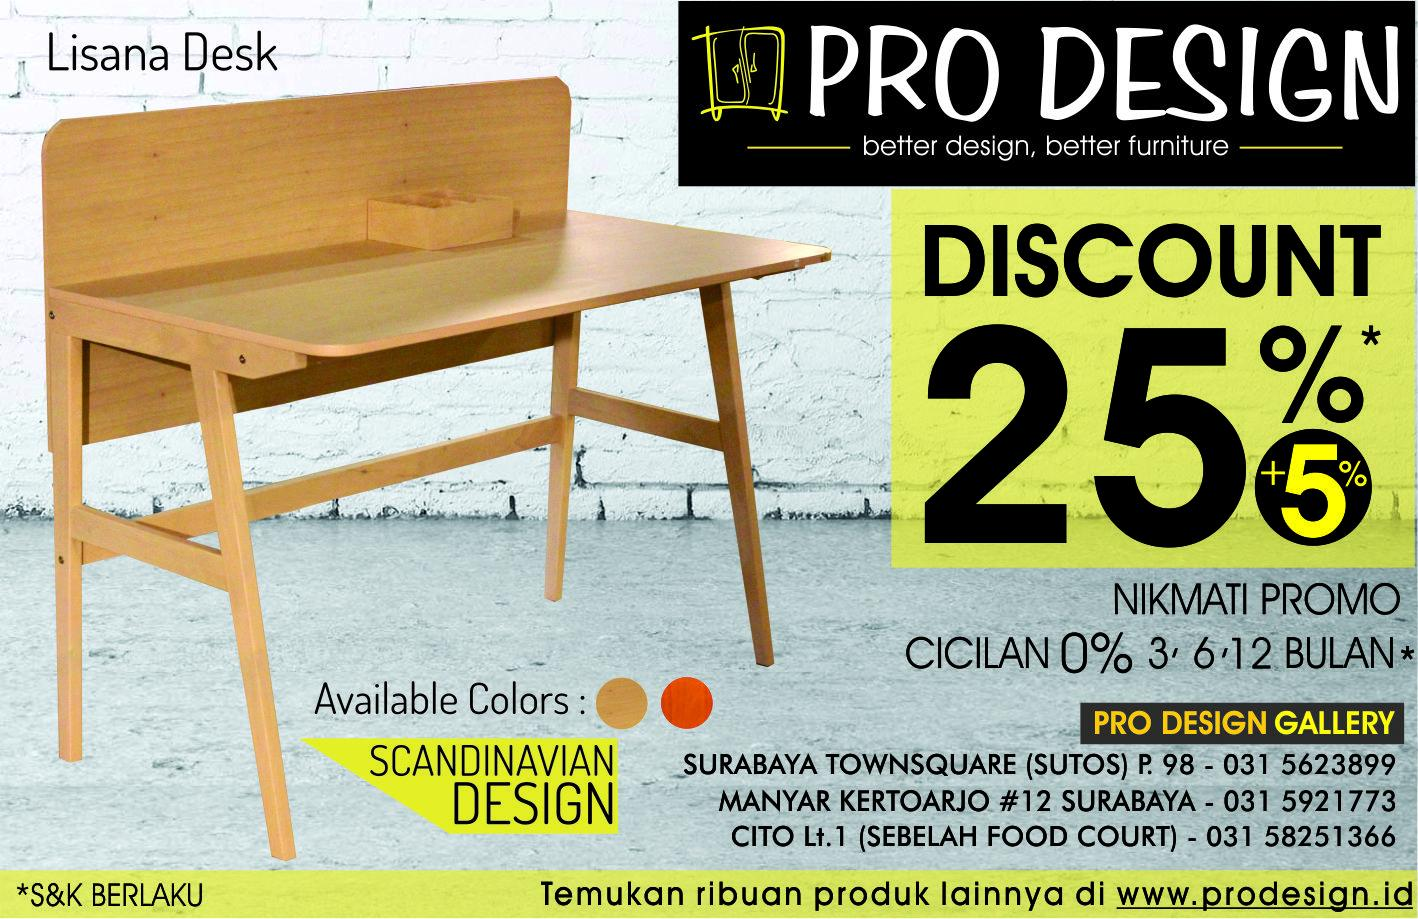 "pro design furniture auf twitter: ""nikmati promo lisana desk"